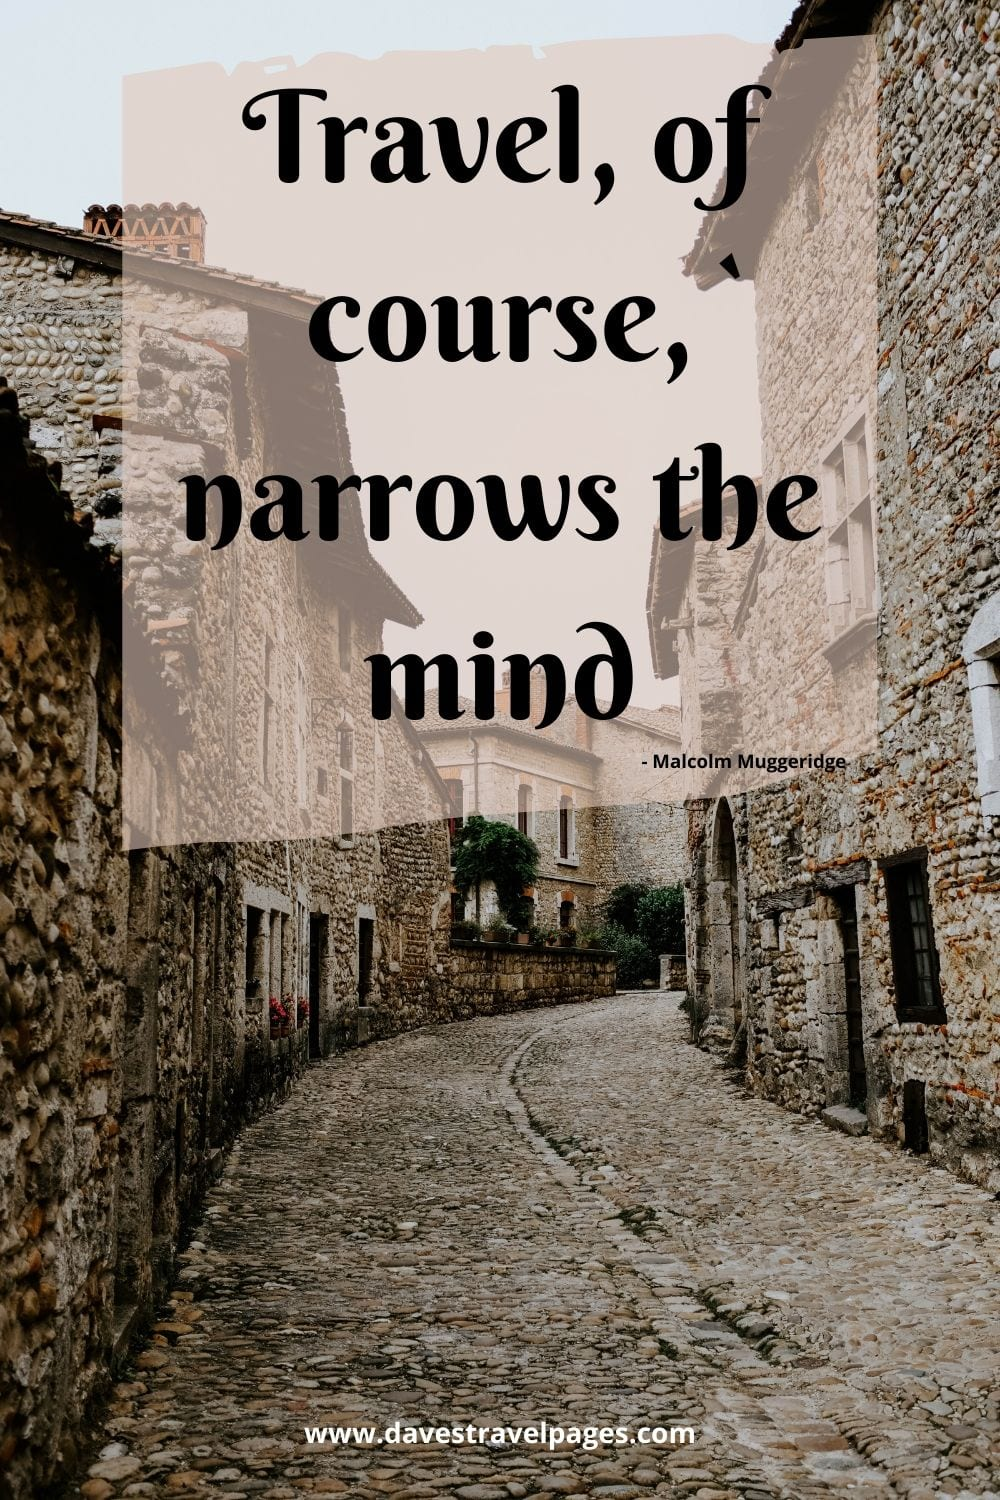 Funny quotes about travel - Travel, of course, narrows the mind. Malcolm Muggeridge